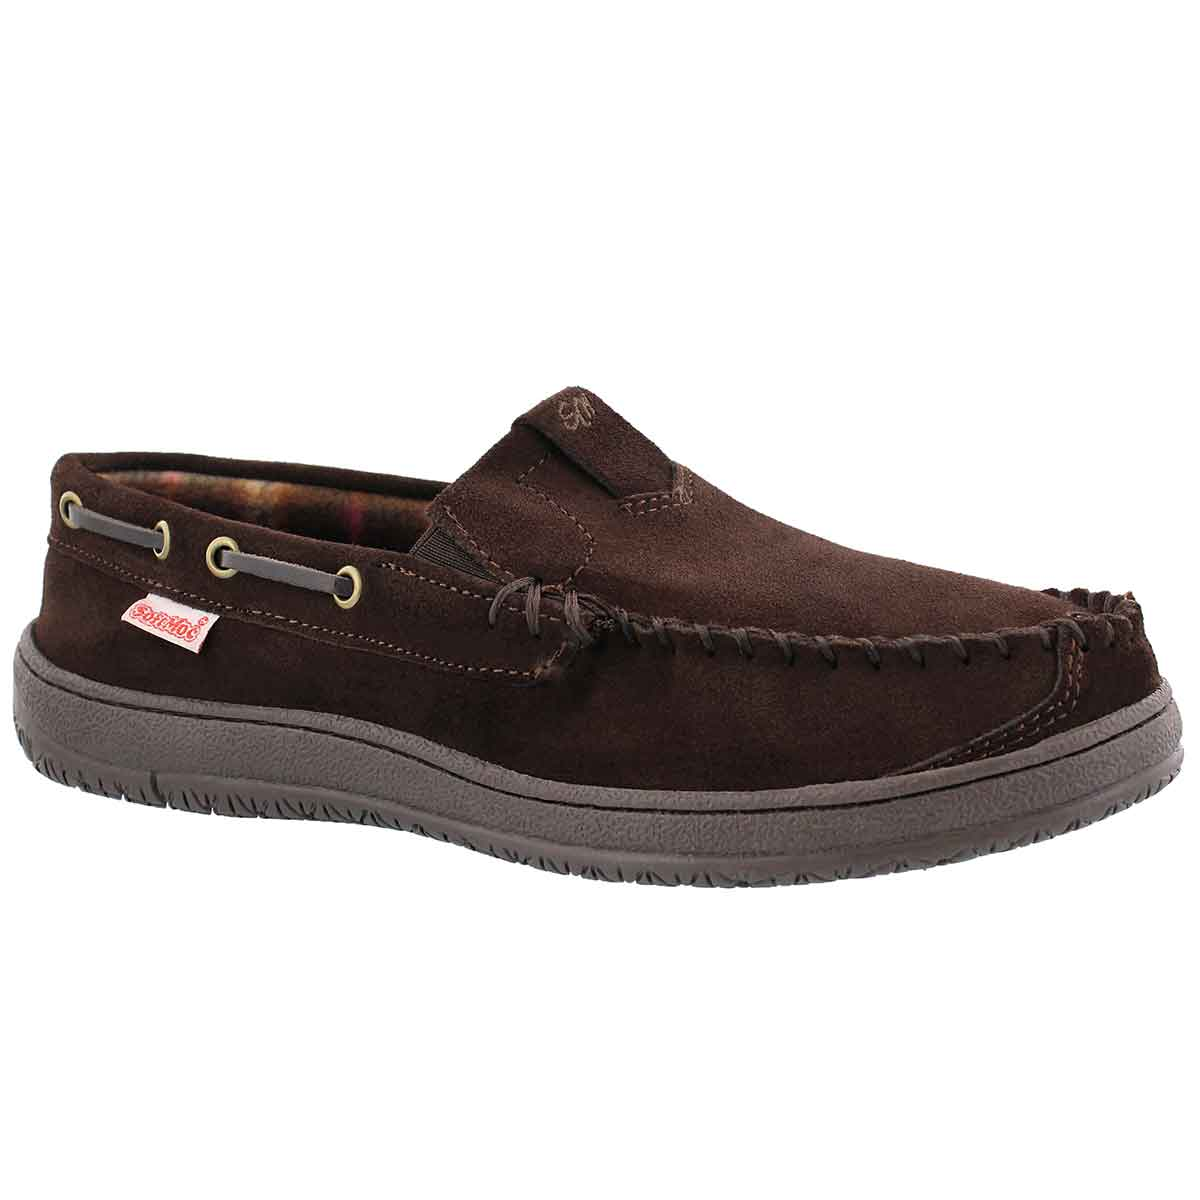 Men's DARIAN chocolate suede moccasins